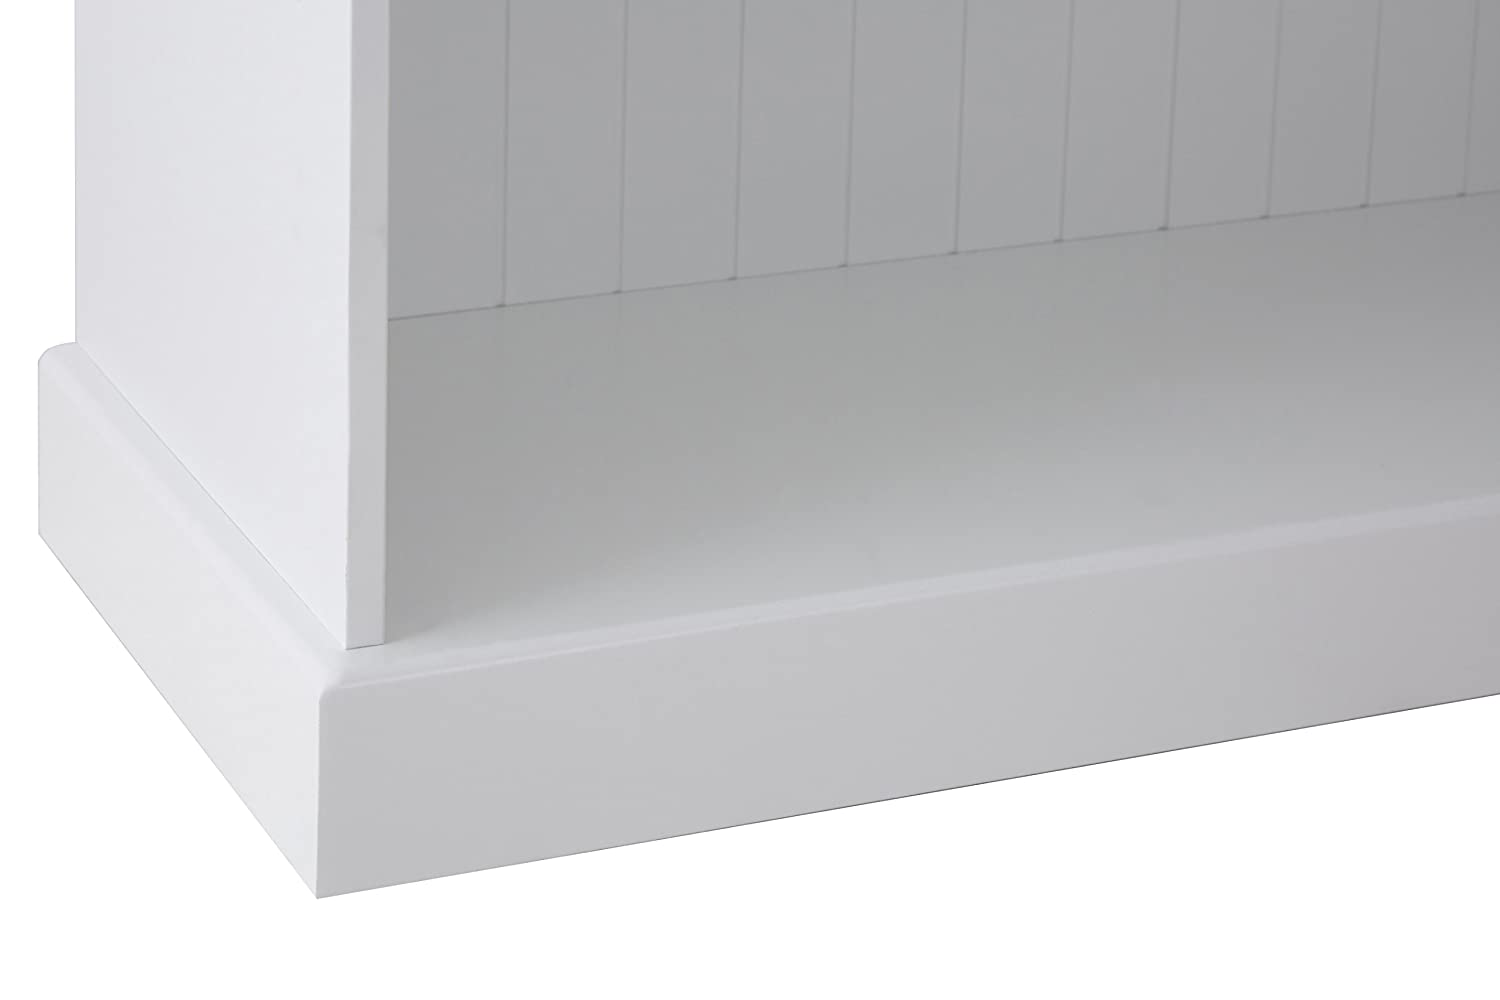 Premier Housewares Estanter/ía de 2 estantes tablero dm, 65 x 70 x 30 cm color blanco